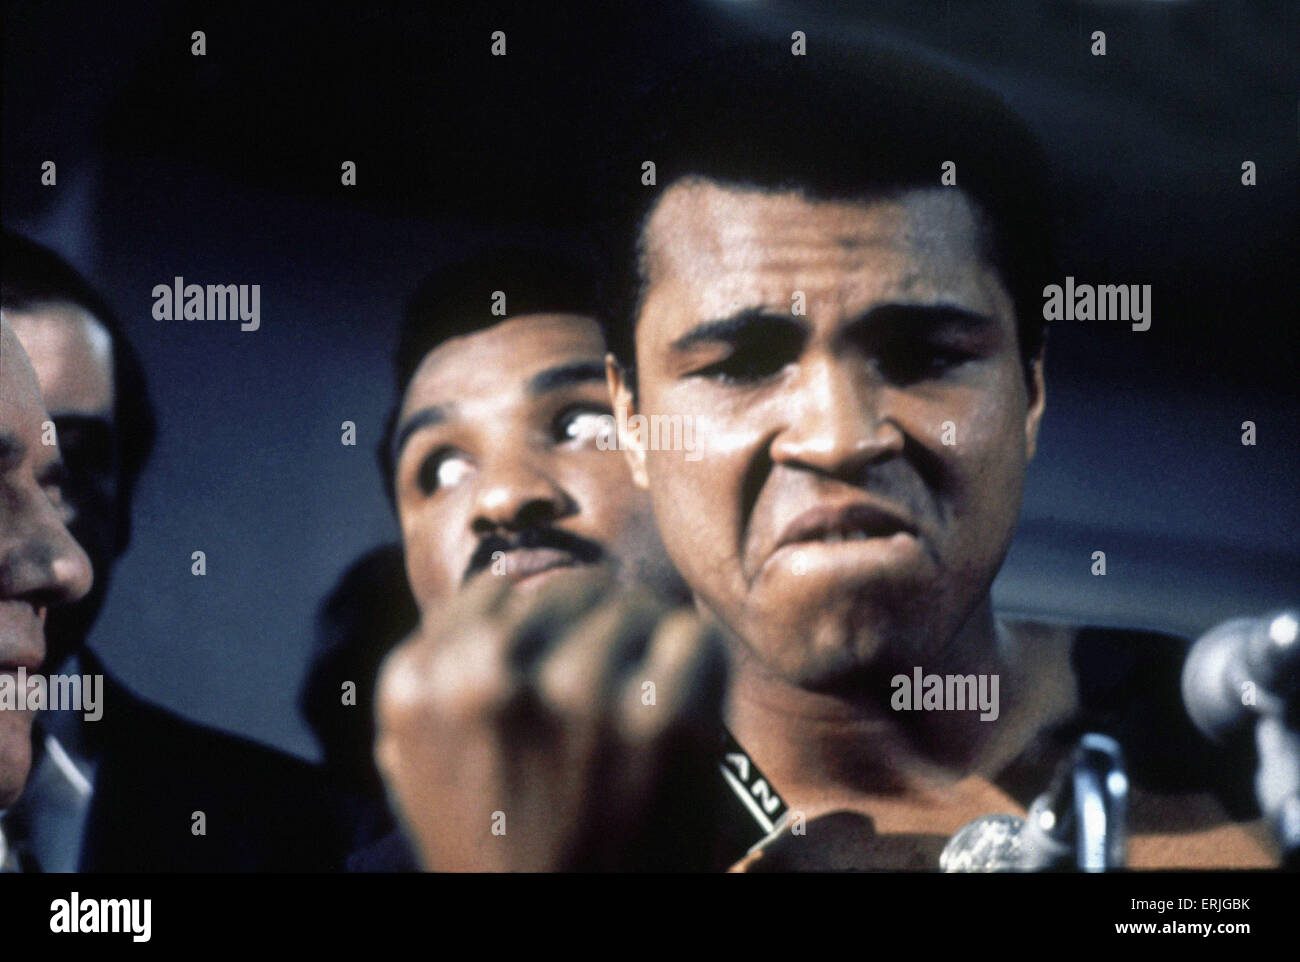 Muhammad Ali at the weigh-in for 2nd fight against Smokin Joe Frazier, to be held at Madison Square Garden in New - Stock Image